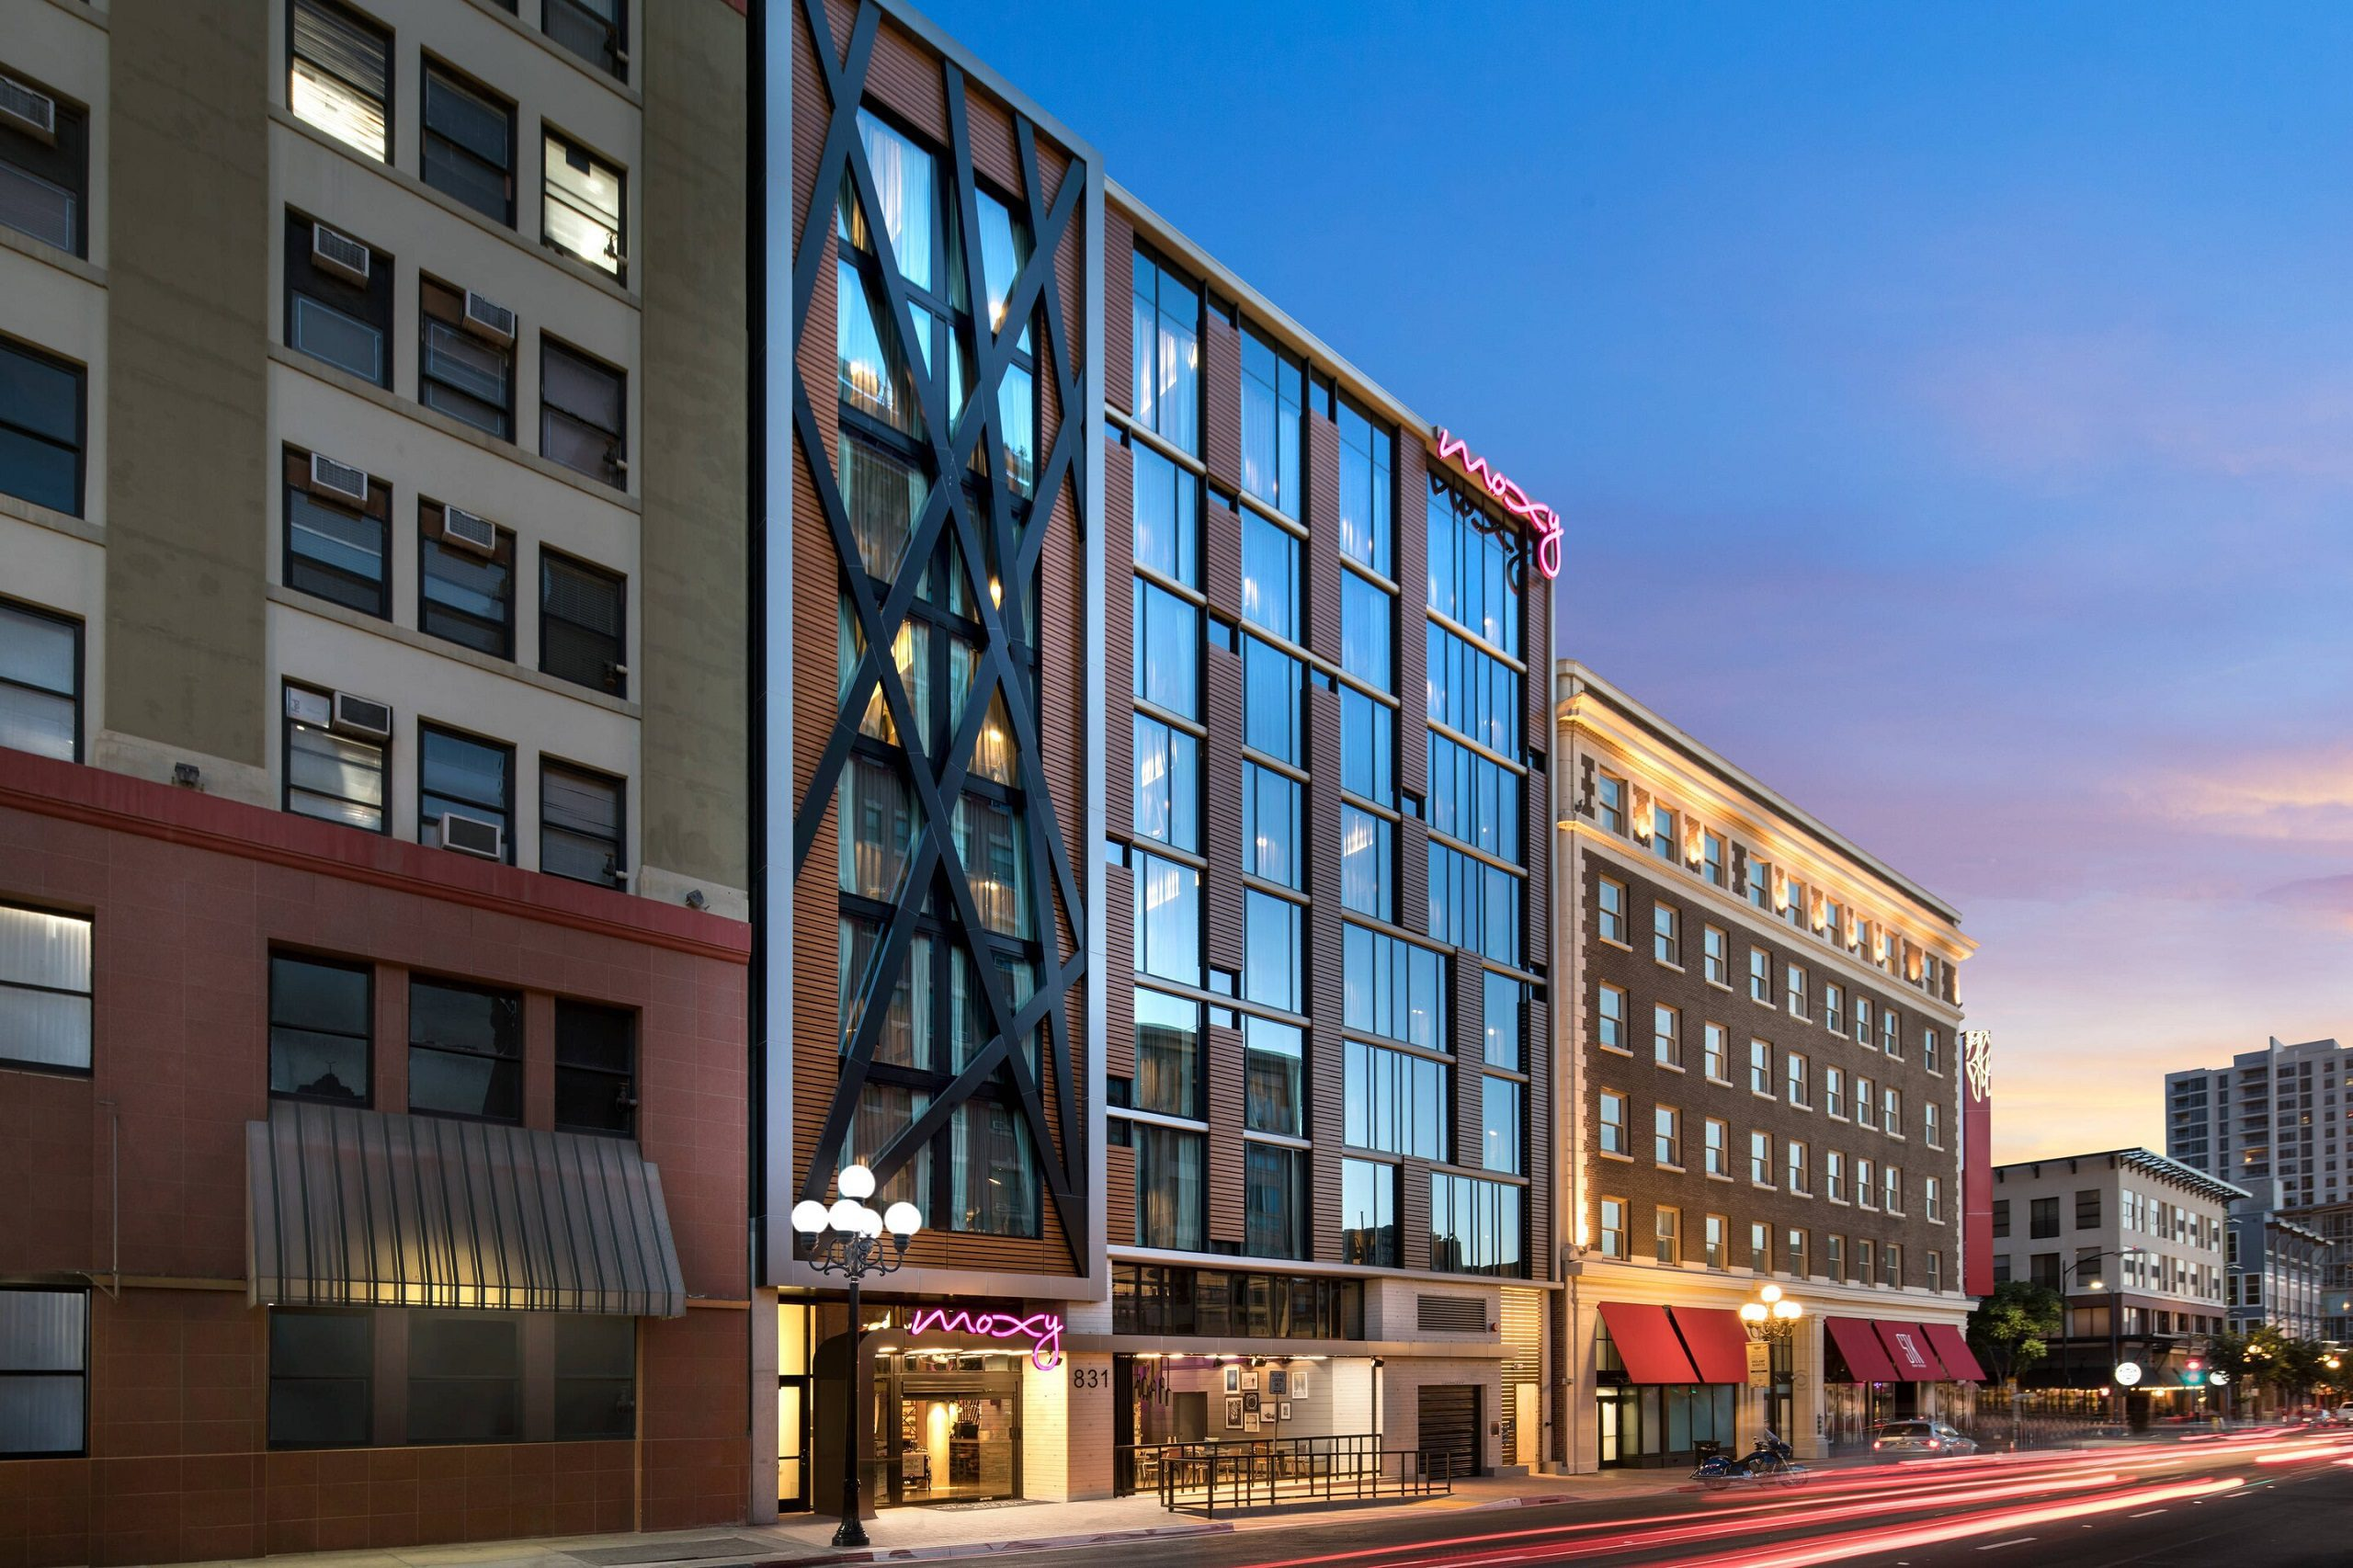 An outside view of The Moxy Hotel in San Diego's Gaslamp Quarter.